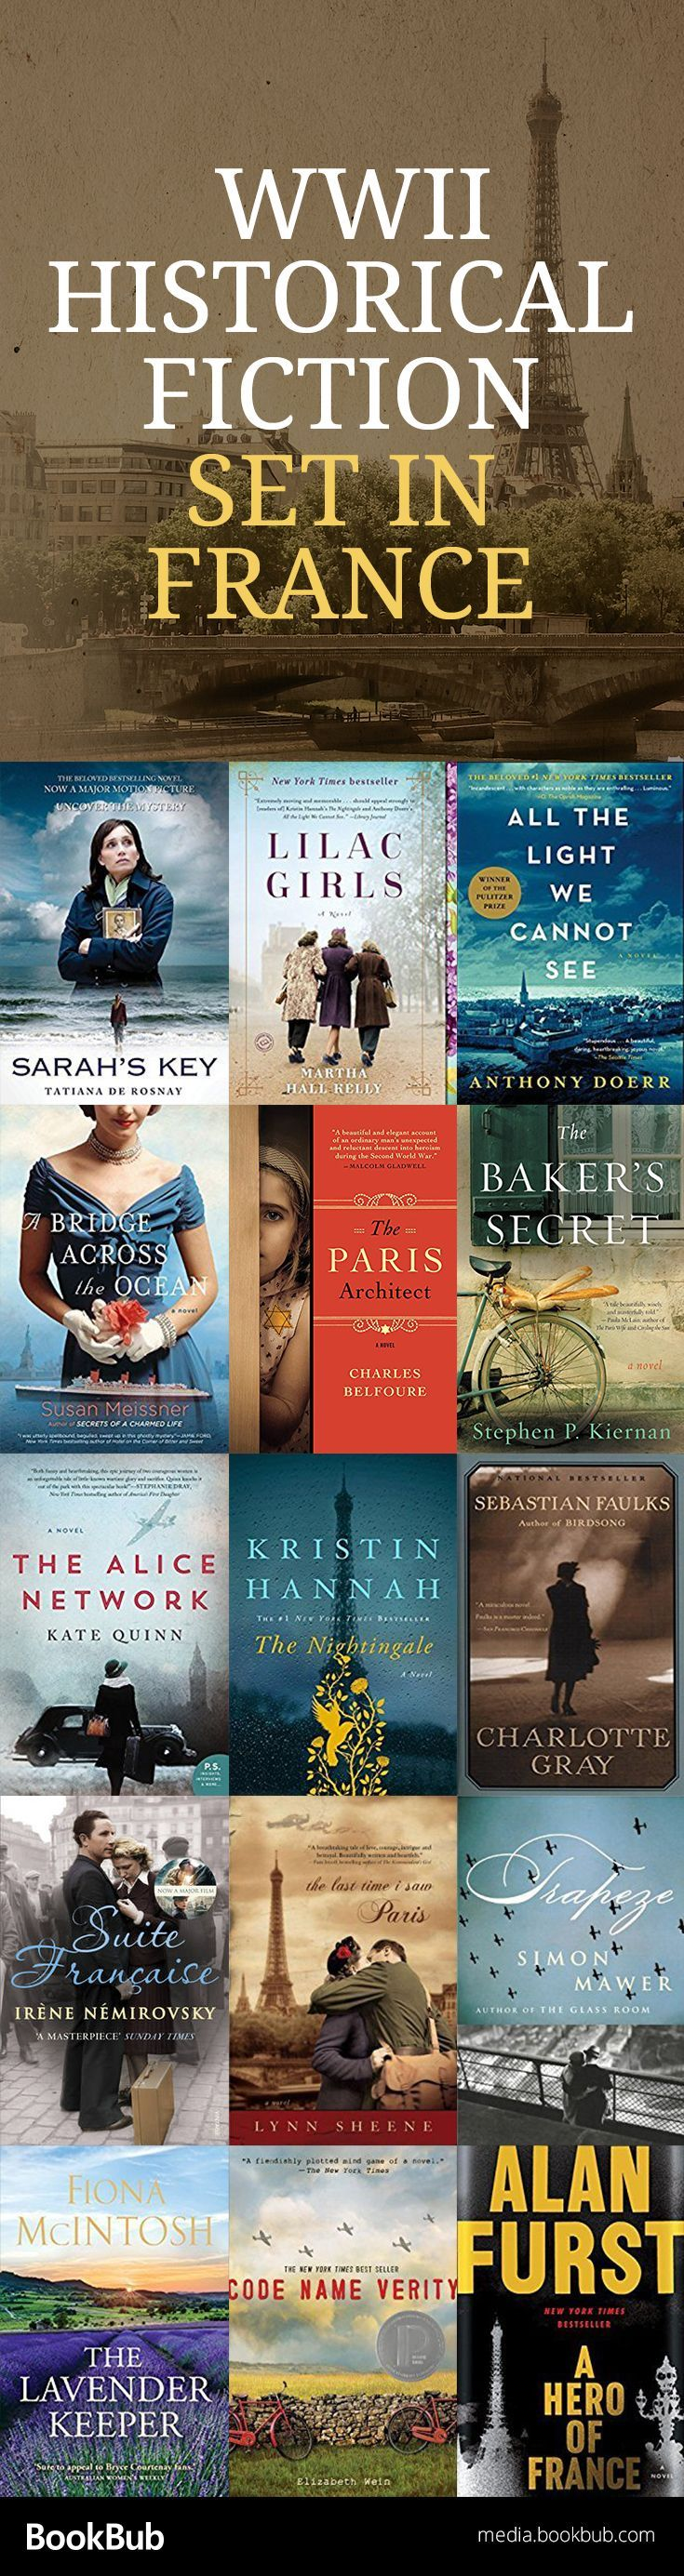 15 World War 2 books worth reading. These WW2 historical fiction novels are worth adding to your reading list.